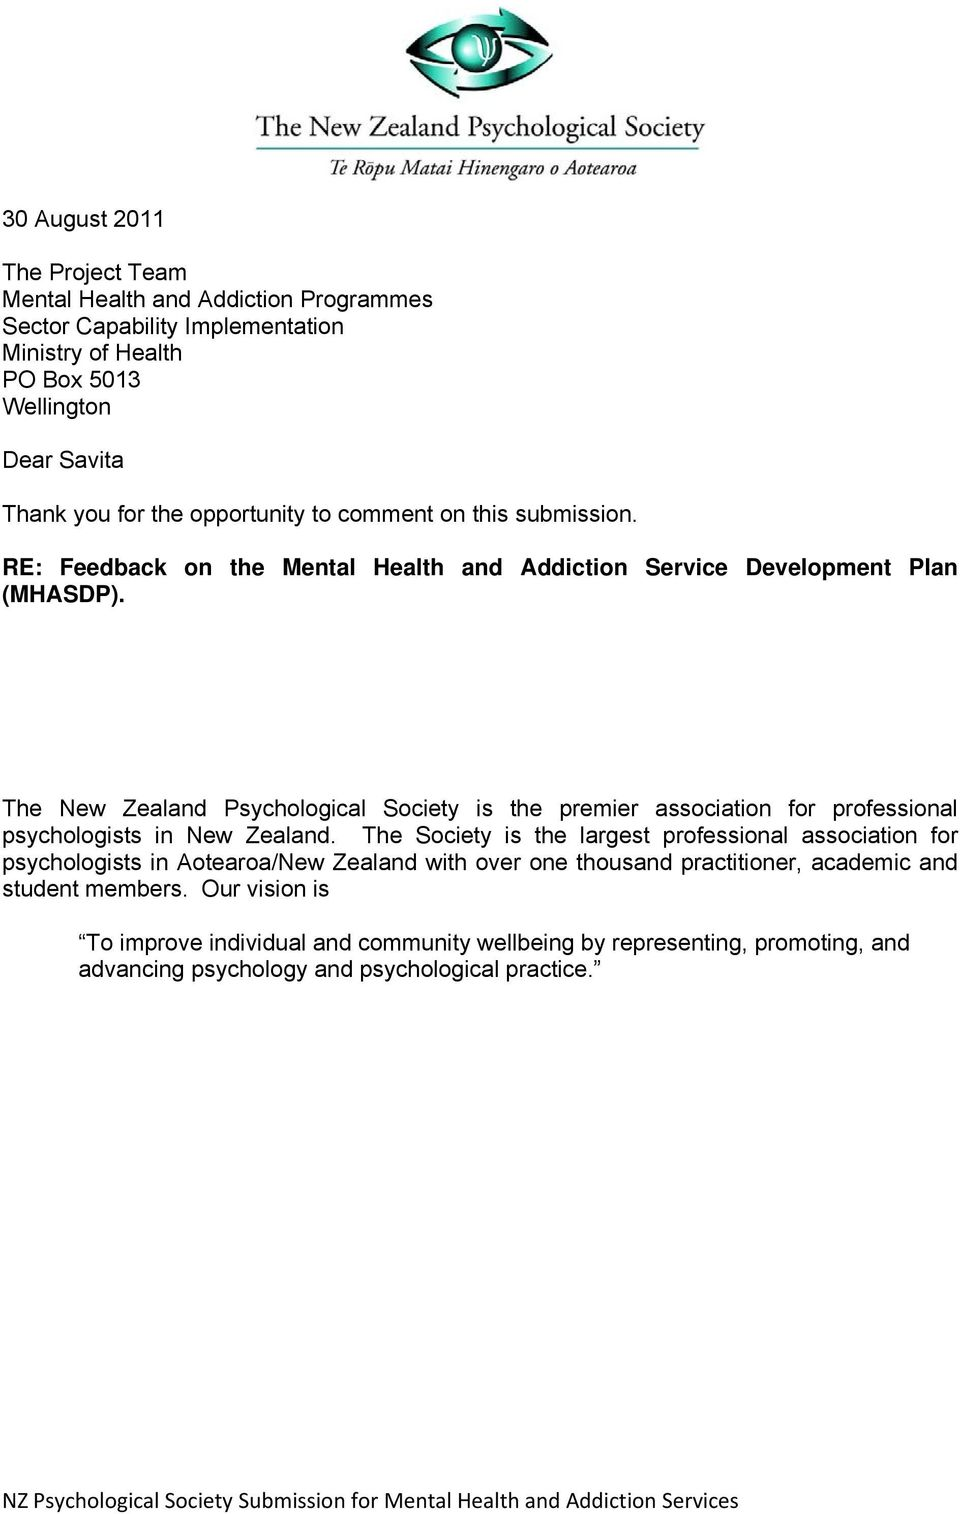 The New Zealand Psychological Society is the premier association for professional psychologists in New Zealand.